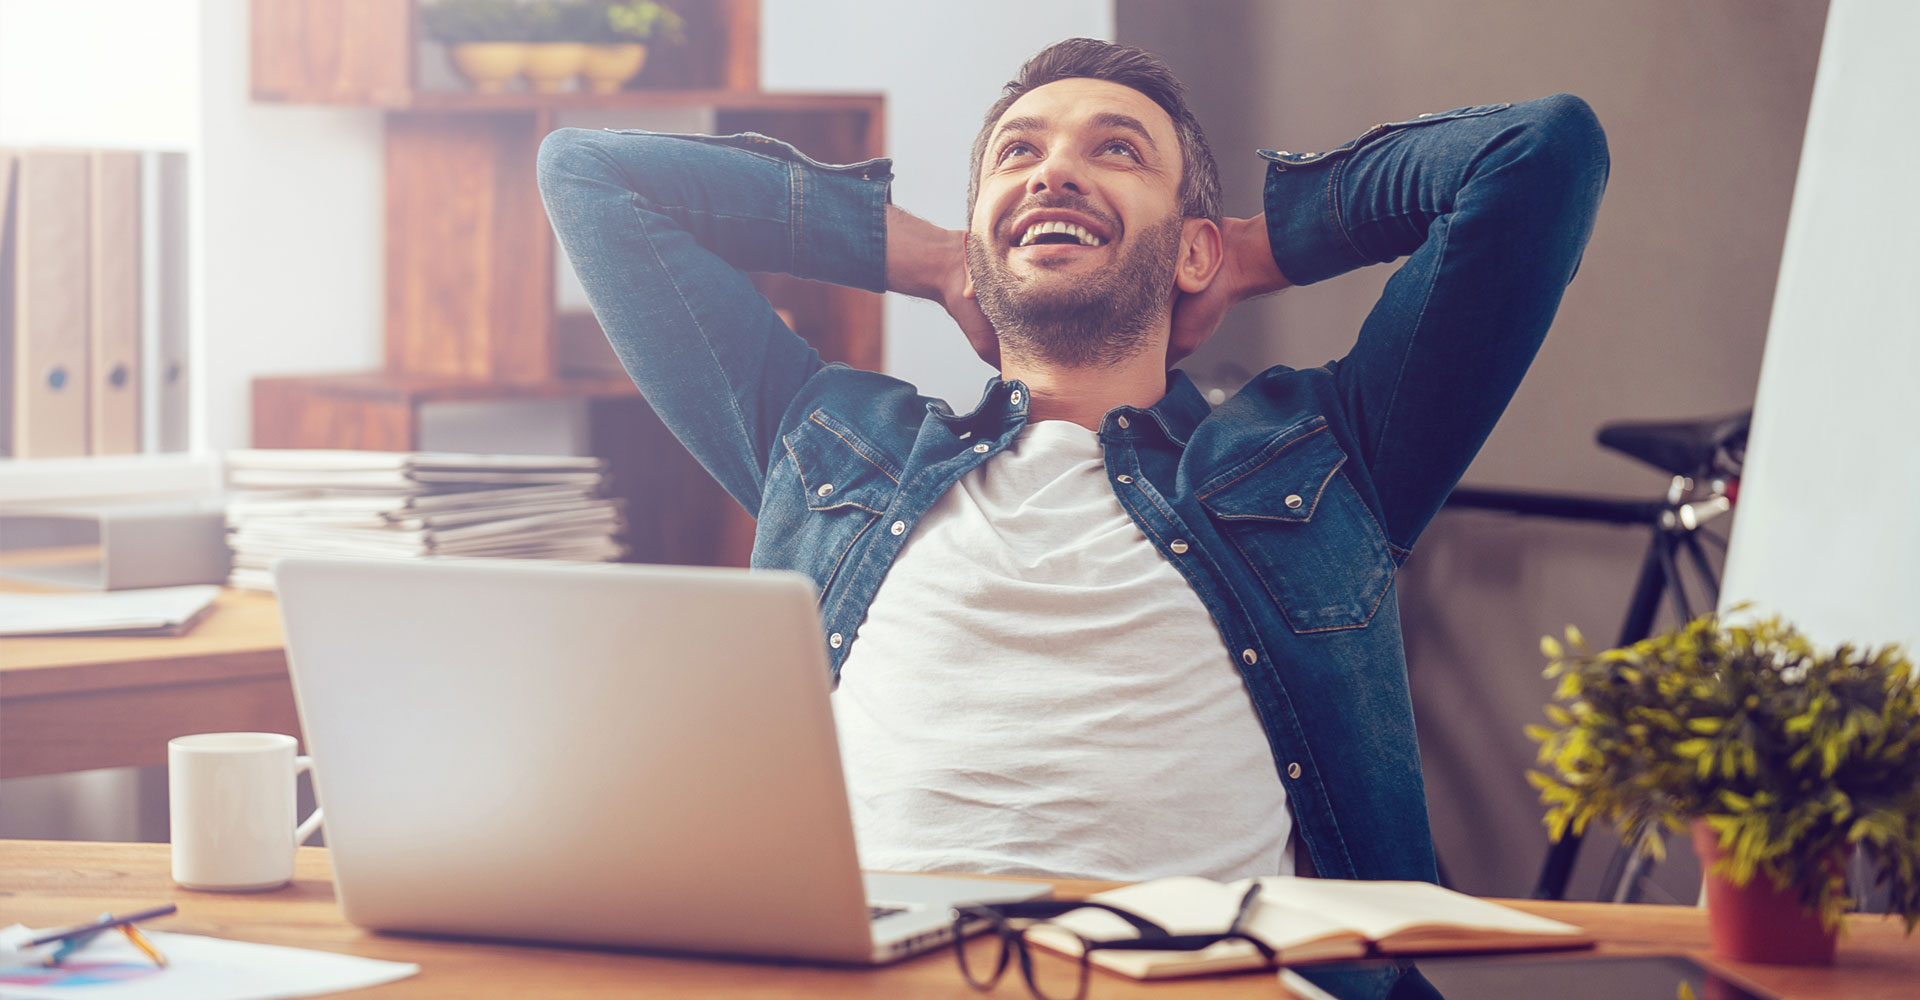 Manage remote employees' well-being with pulse surveys. Quick questions for fast feedback that give insight to the health of your organisation.